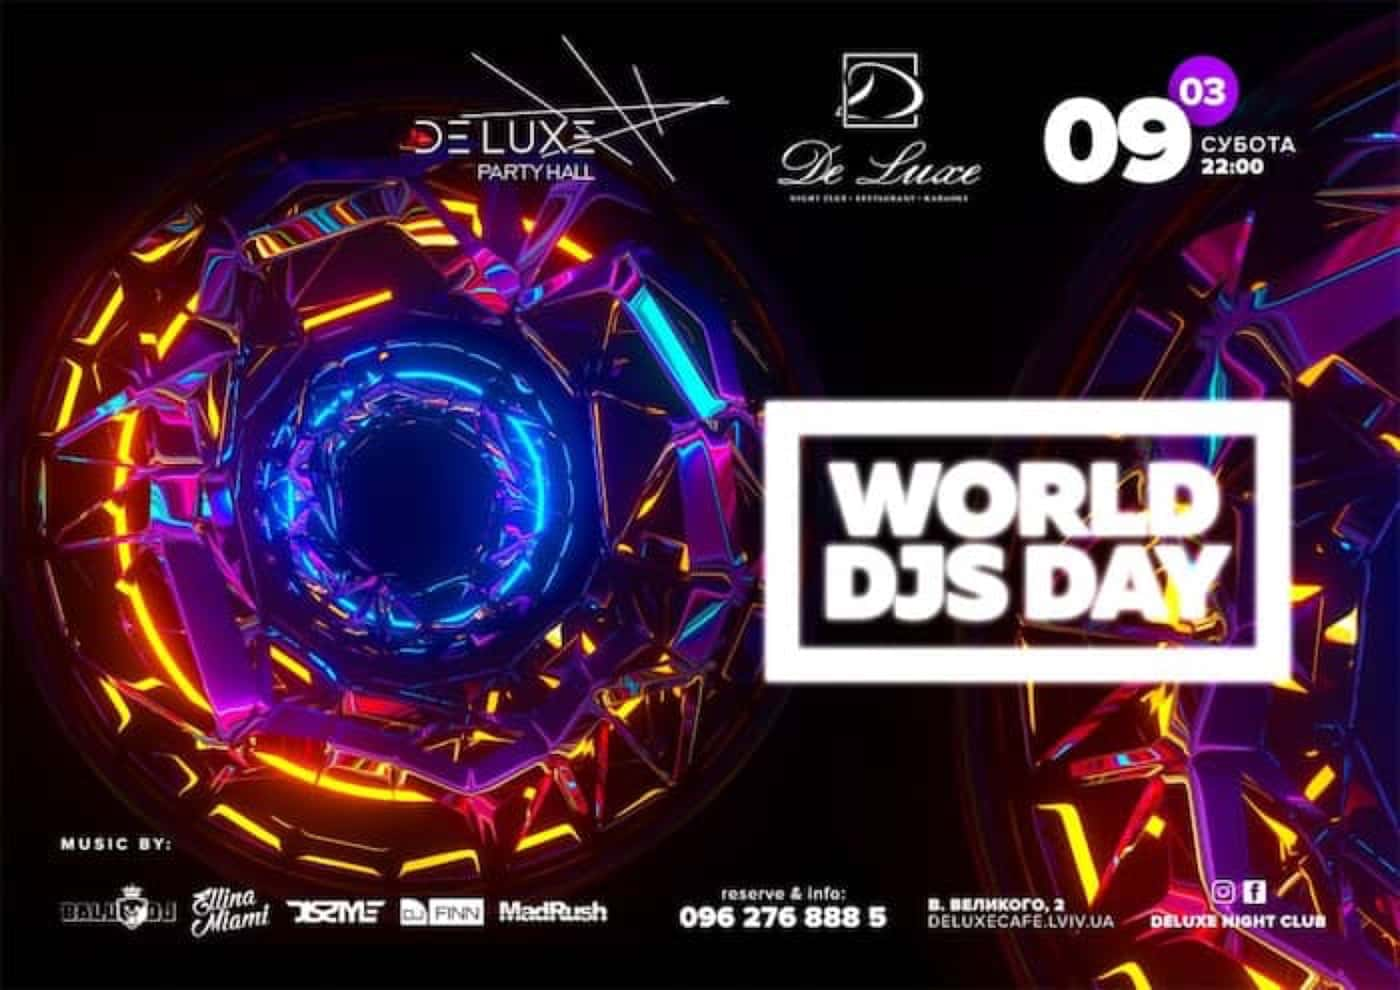 World Djs Day